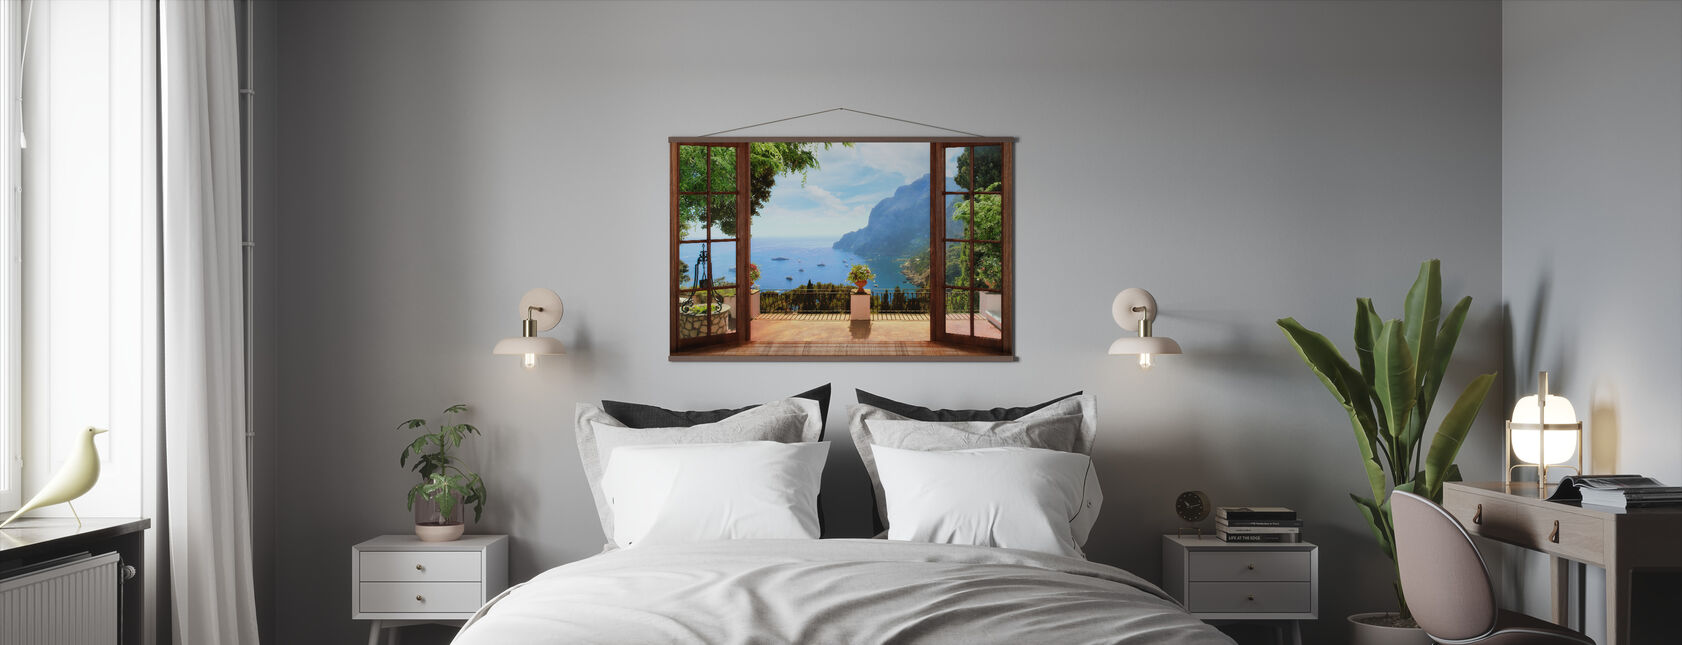 Terrace View - Poster - Bedroom